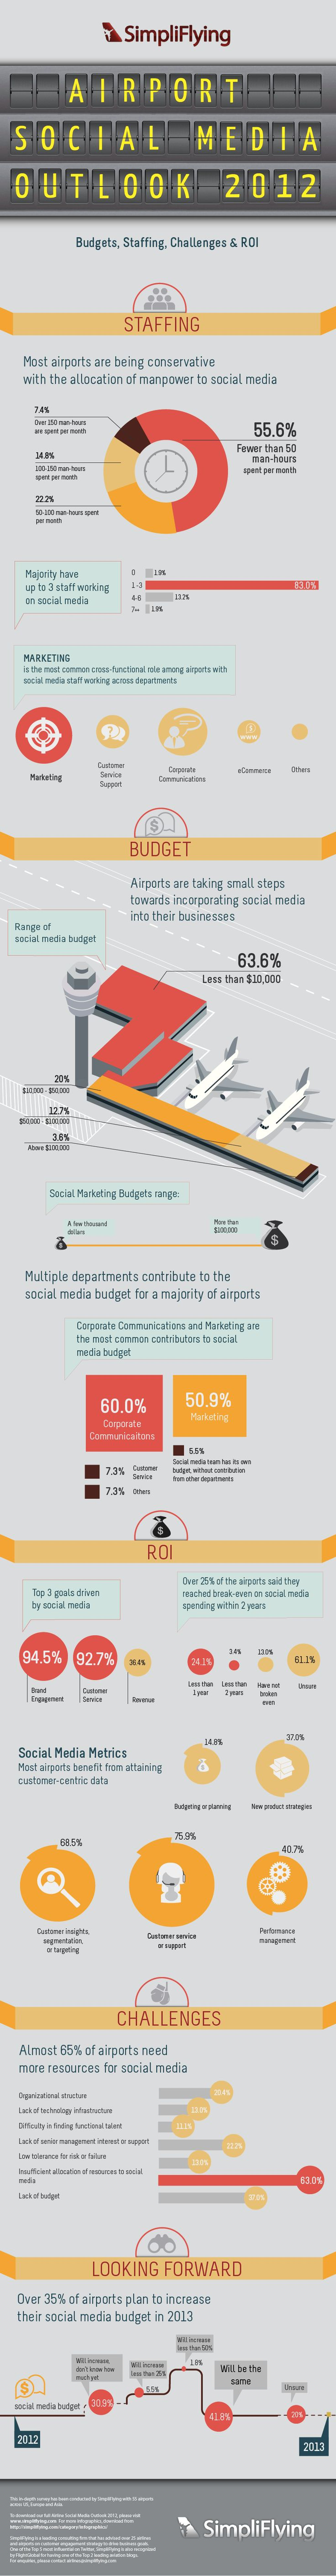 How Are Airports Using Social Media? [INFOGRAPHIC]